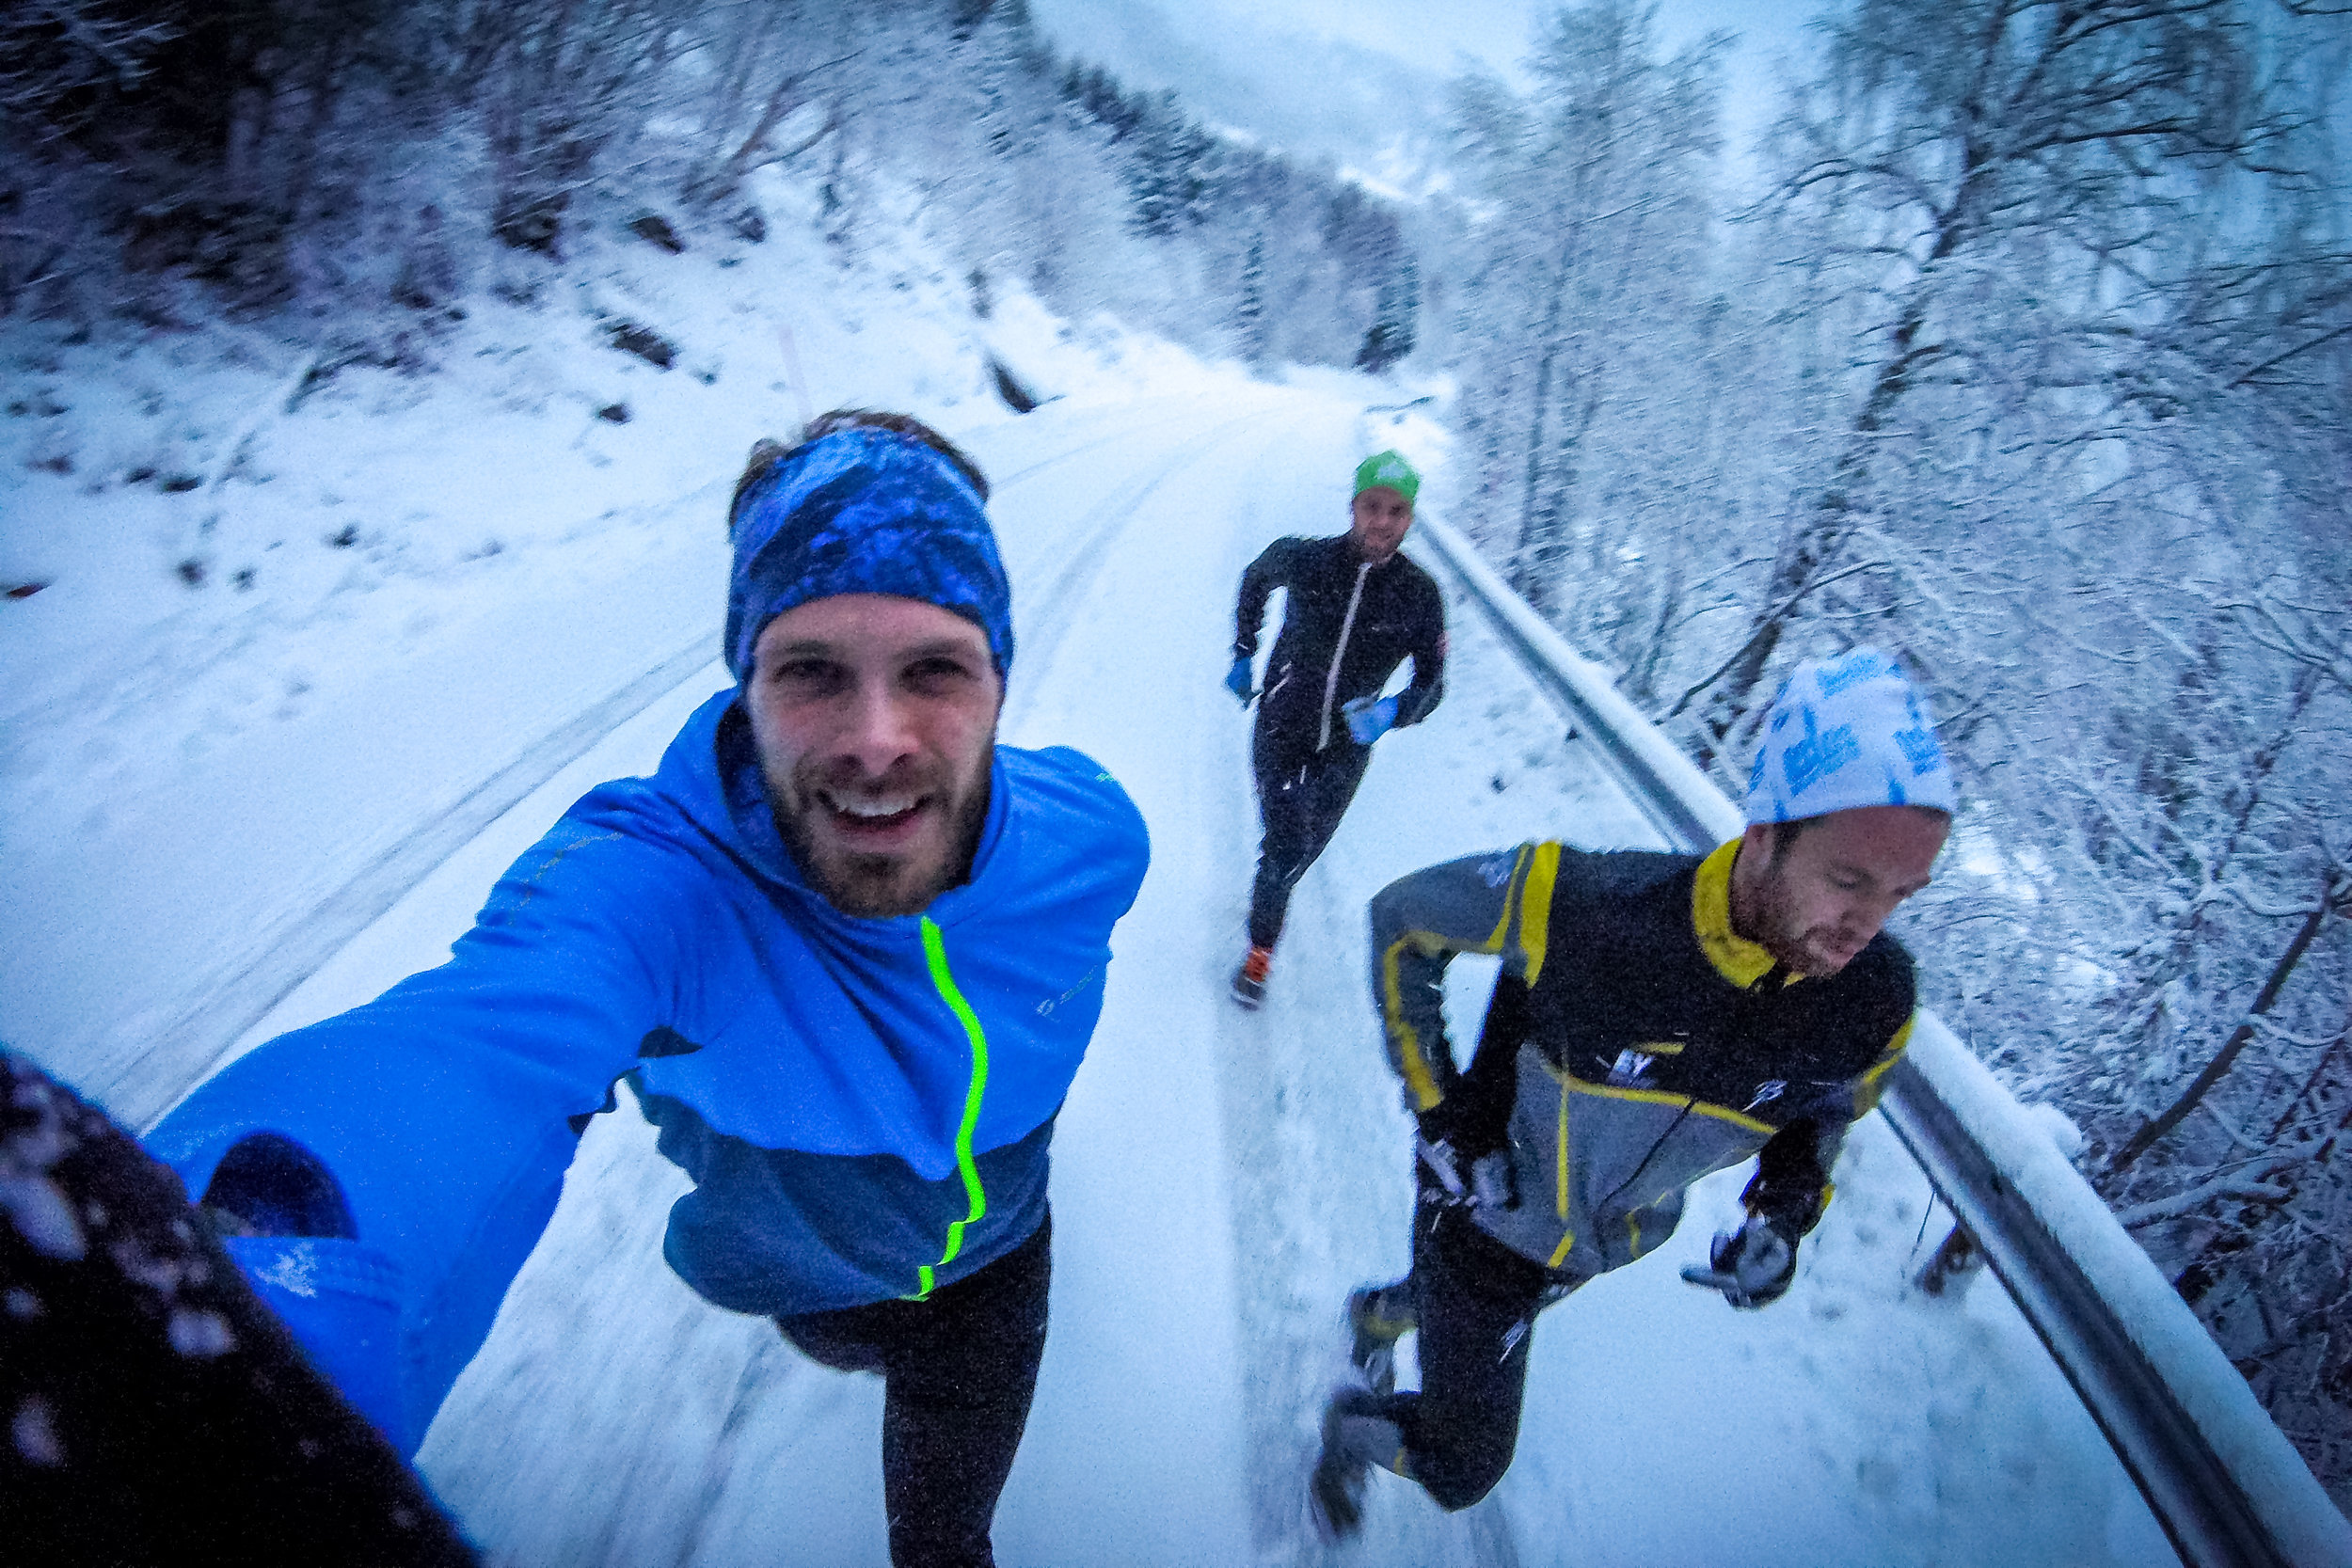 E asy run with my mates from home was done yesterday. Who can say no to a run in the snow when a recovery day was planned? I can't... 😜 GoPro Hero Session 4